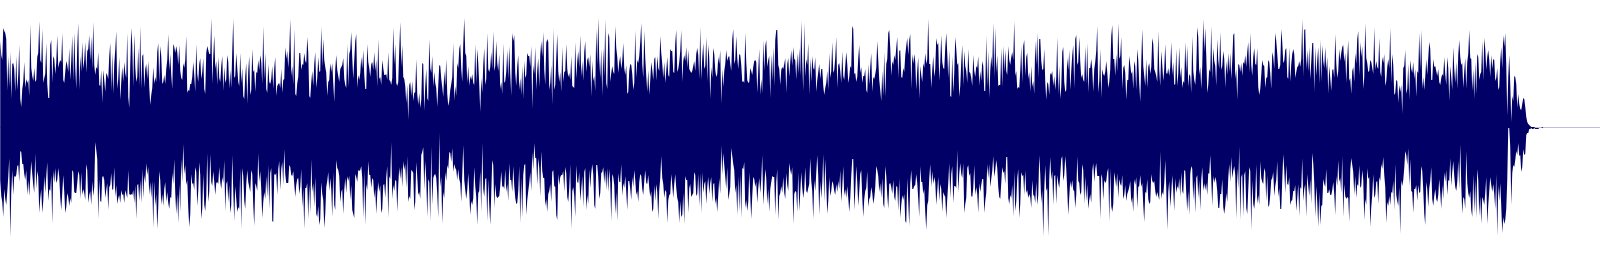 waveform of track #144144